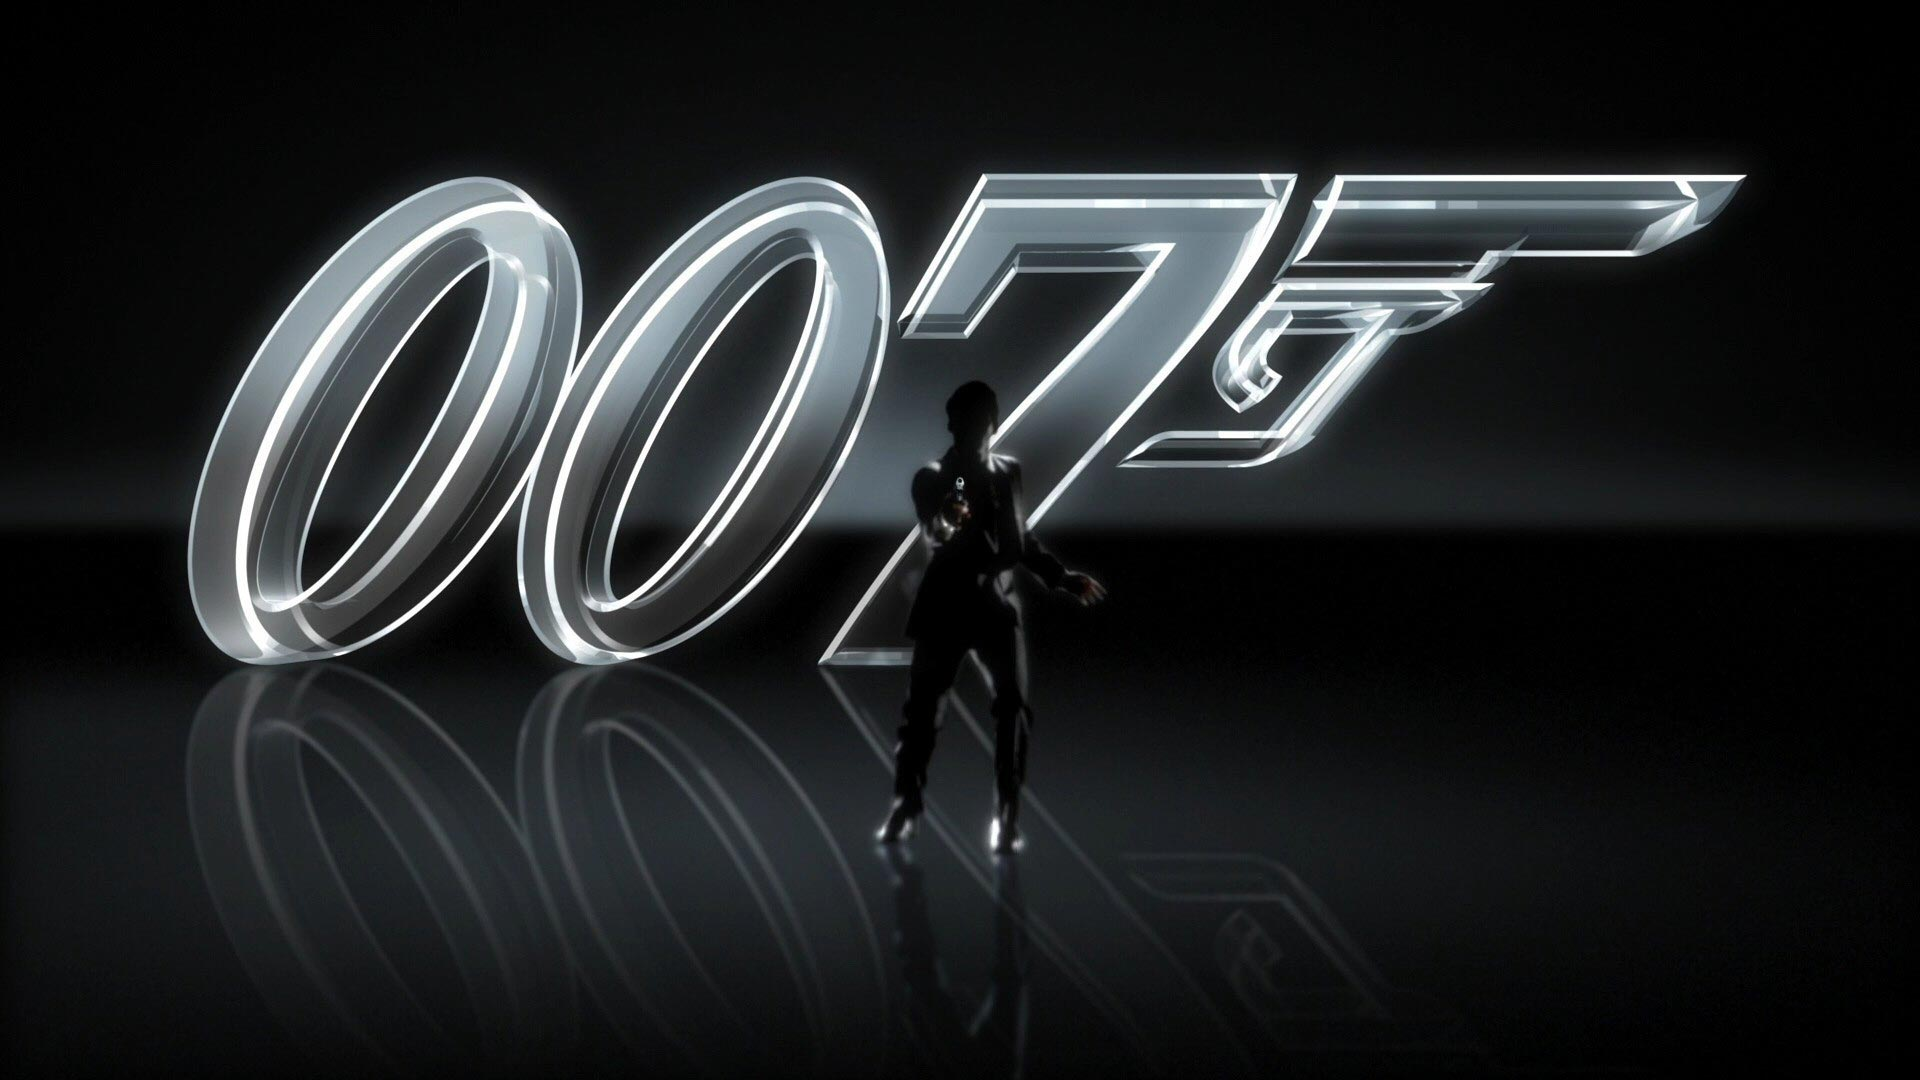 James Bond 007 Logo Wallpaper